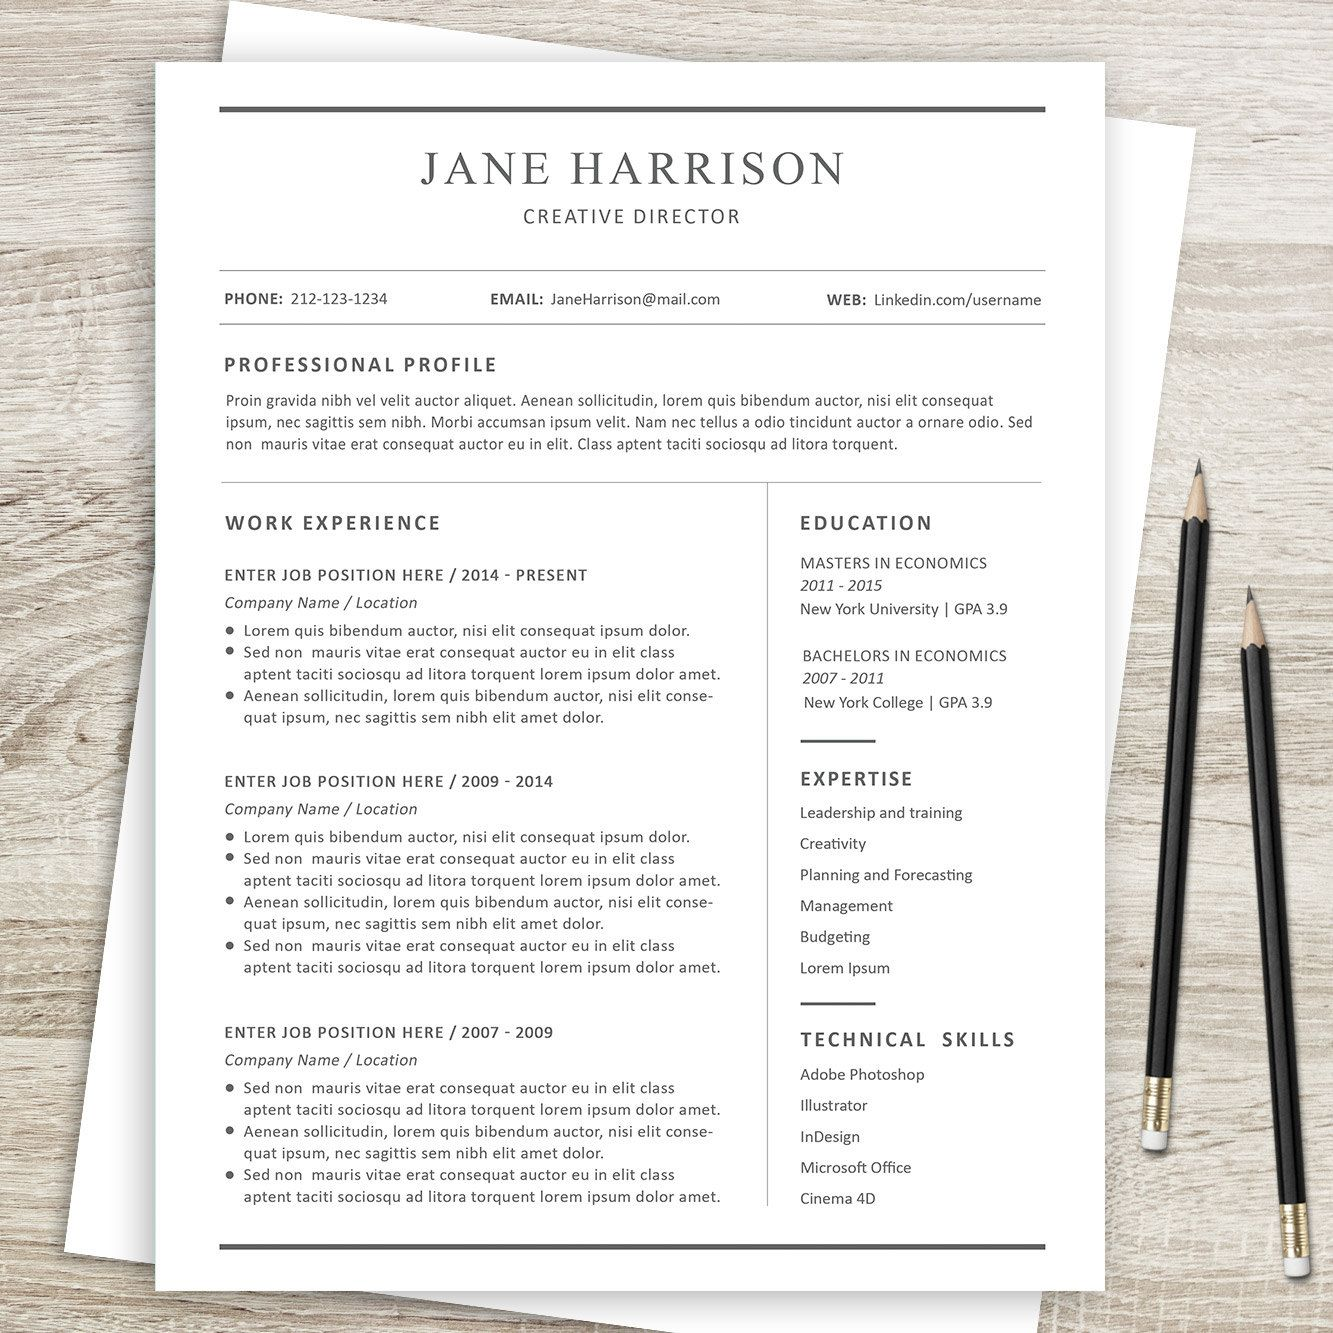 Word Resume Template 2007 Extraordinary Ms Word Resume Template & Cover Letteralso Available In Photoshop .